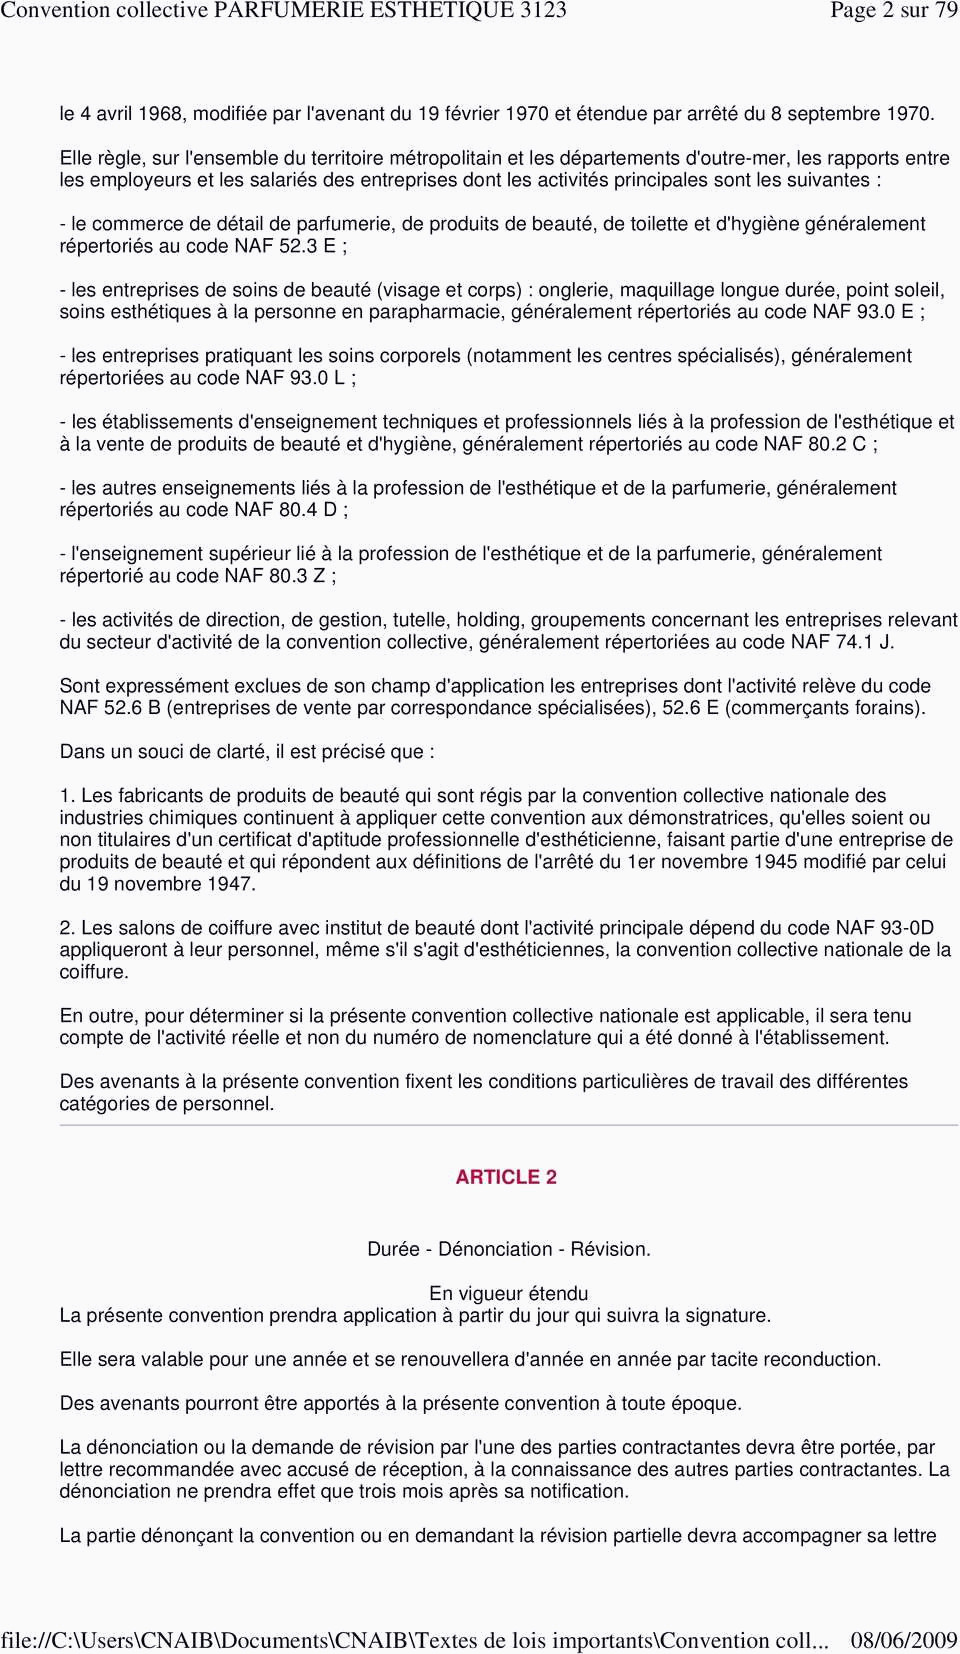 Lettre De Motivation Patissier Lettre De Motivation Patissier élégant Luxe Exemple Logo Pour Cv